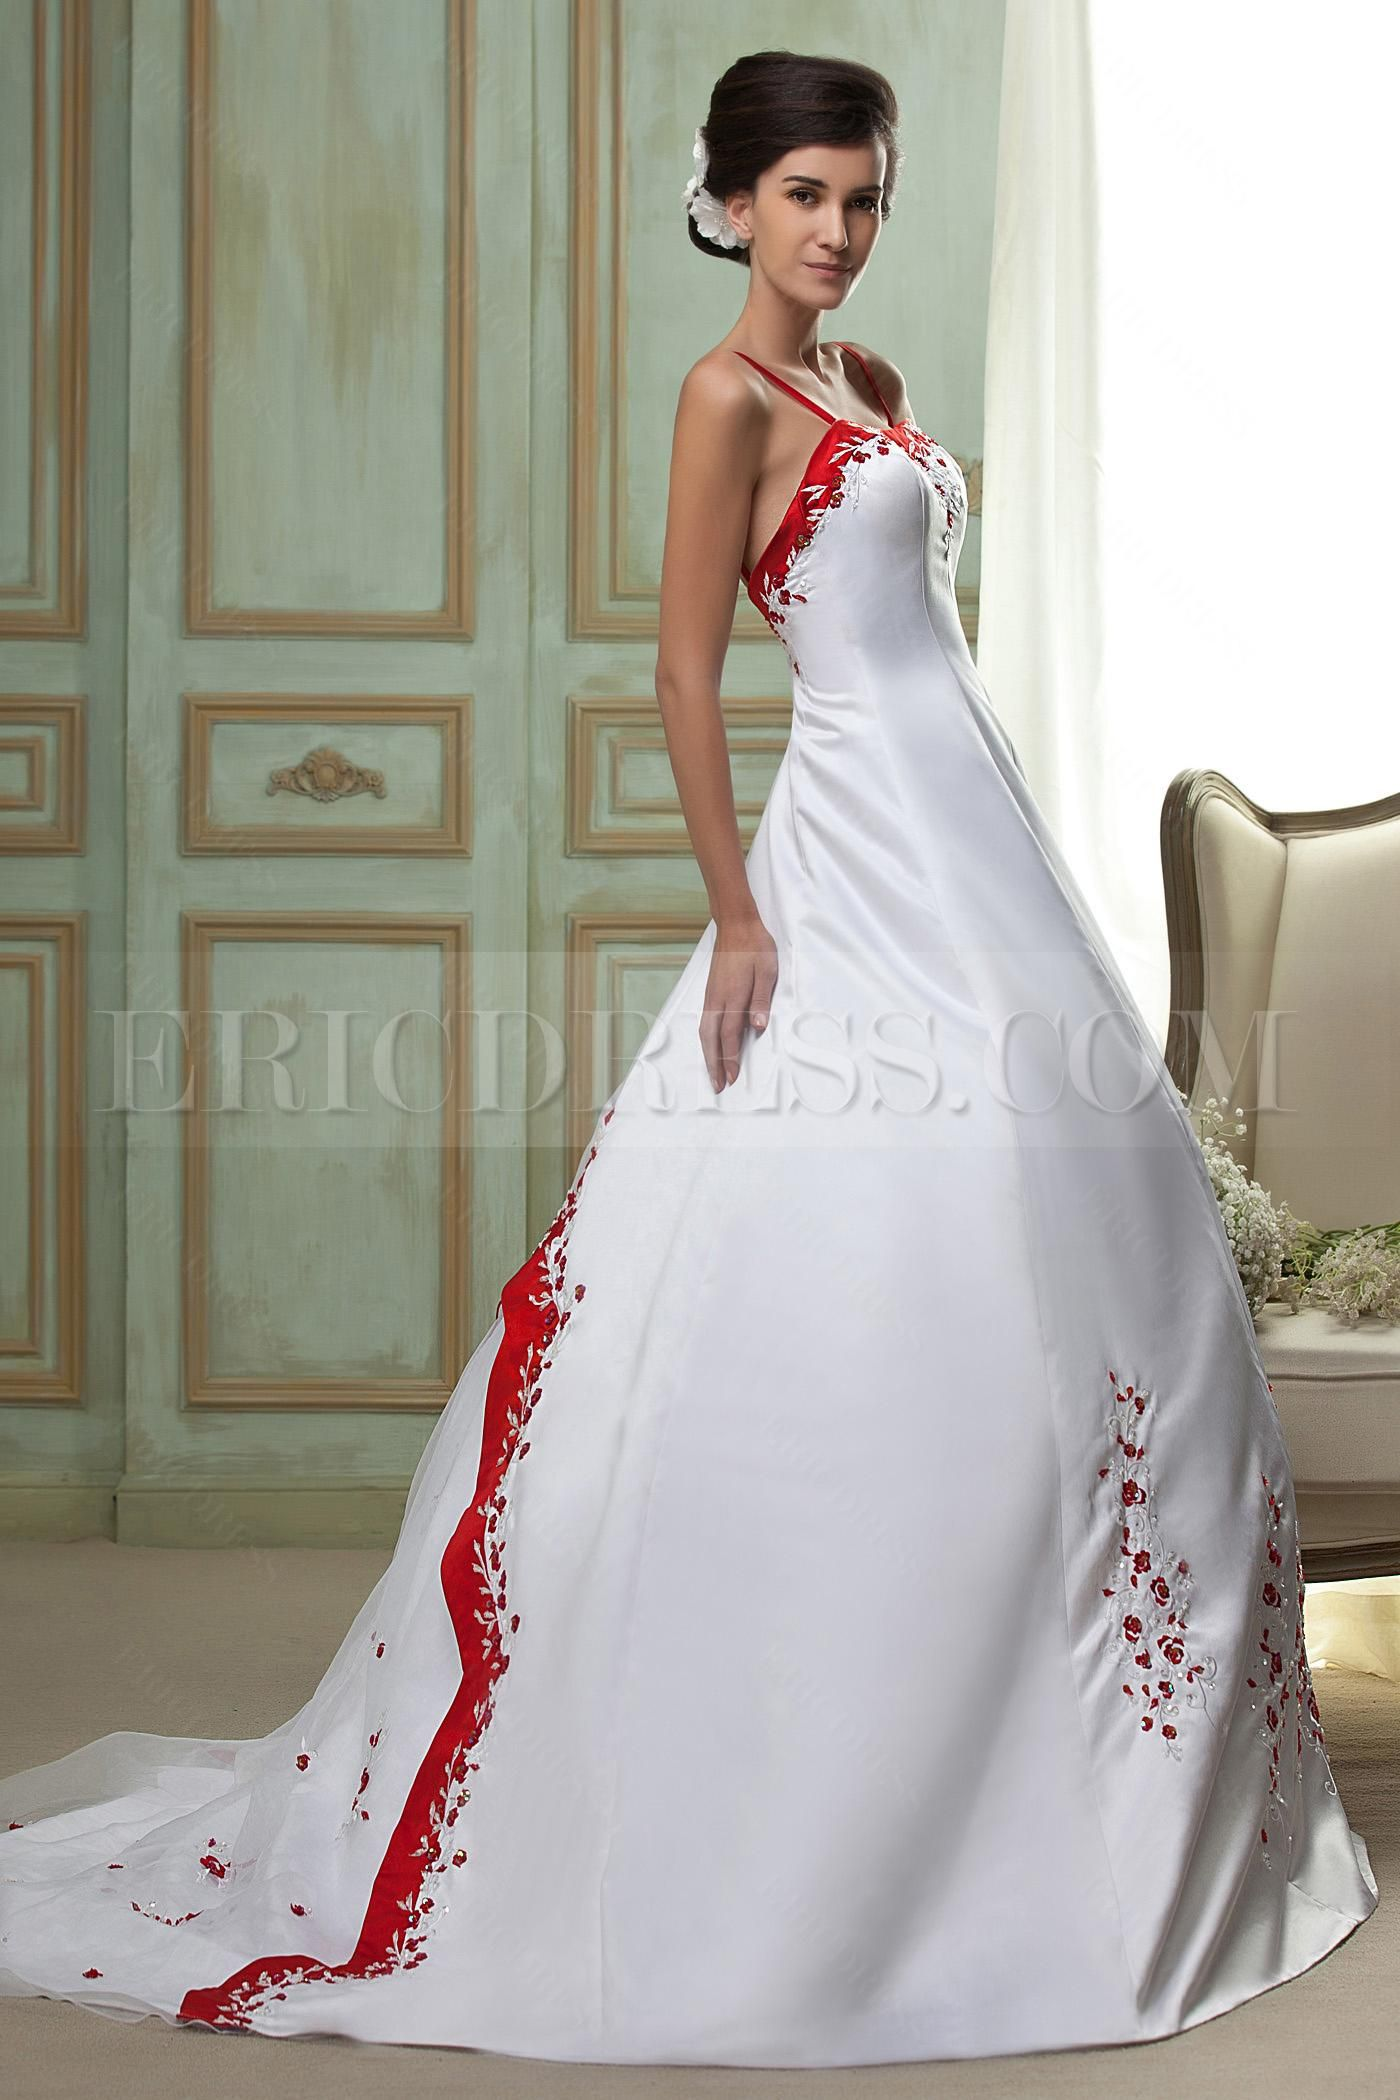 50 Plus Size Red And White Wedding Dresses Wedding Dresses For Plus Size Check Mor Informal Beach Wedding Dress Red Wedding Dresses Informal Wedding Dresses [ 1316 x 1000 Pixel ]